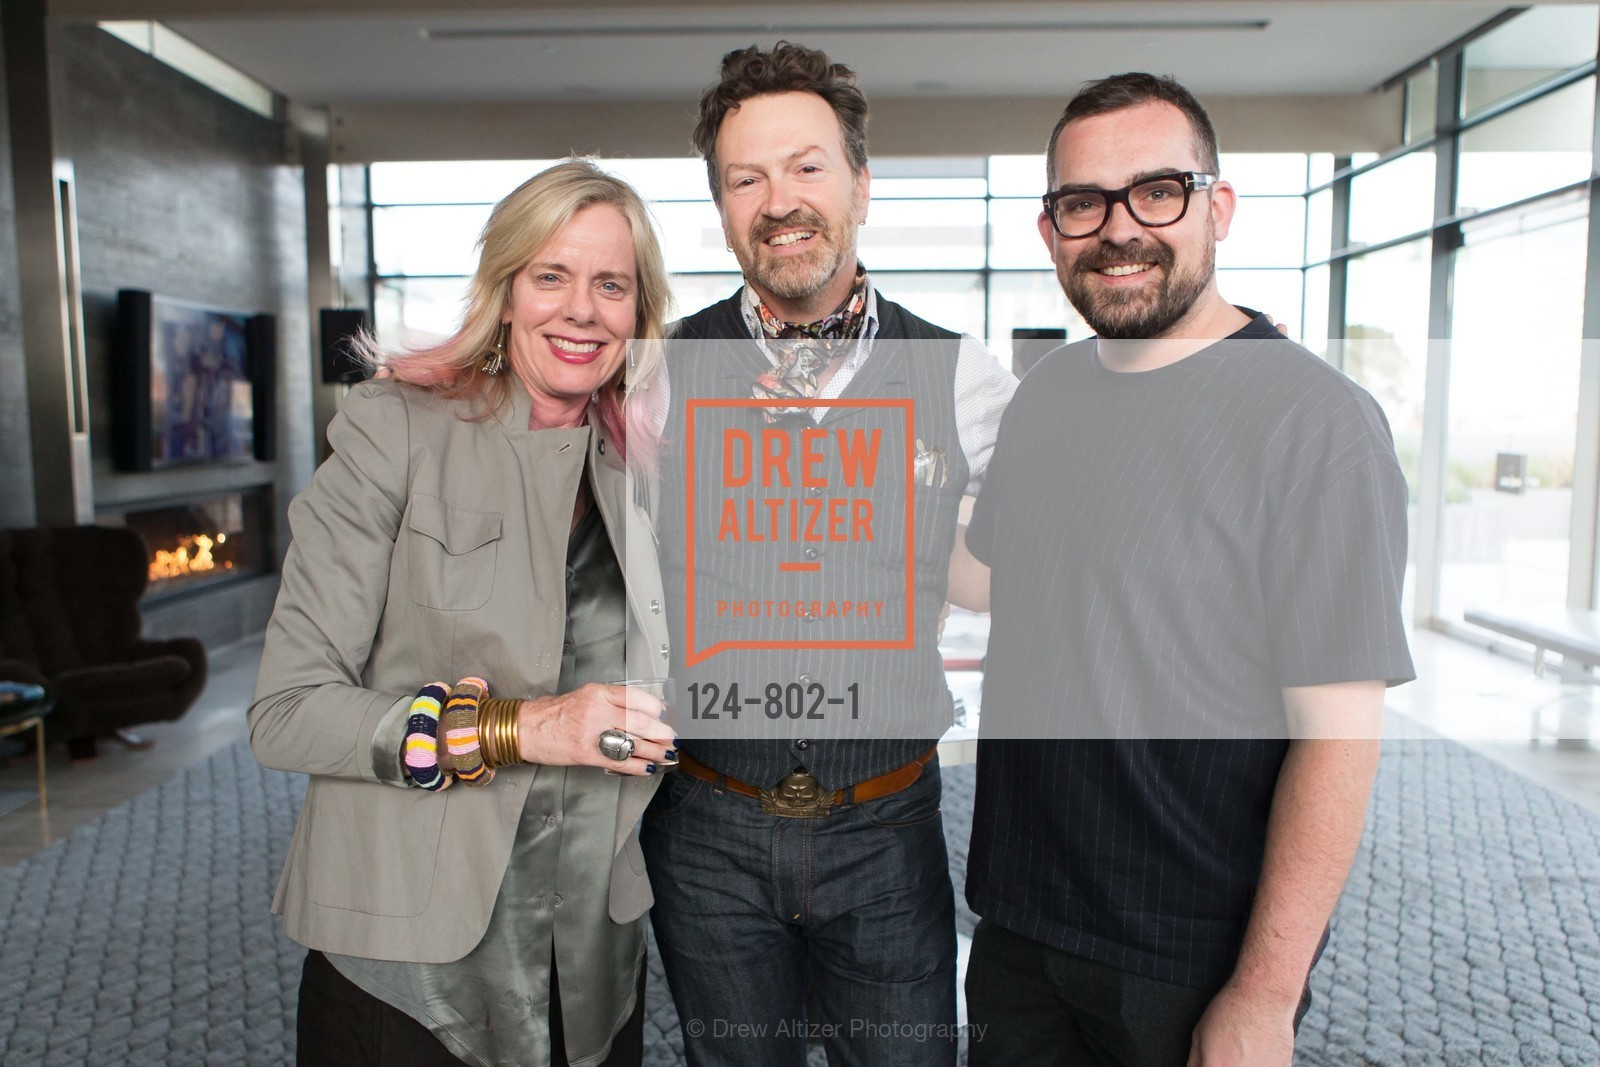 Susan McLaughlin, Paul D'Orleans, Andrew Lord, MR PORTER Celebrate The San Francisco Issue of The Journal, US, April 24th, 2015,Drew Altizer, Drew Altizer Photography, full-service event agency, private events, San Francisco photographer, photographer California